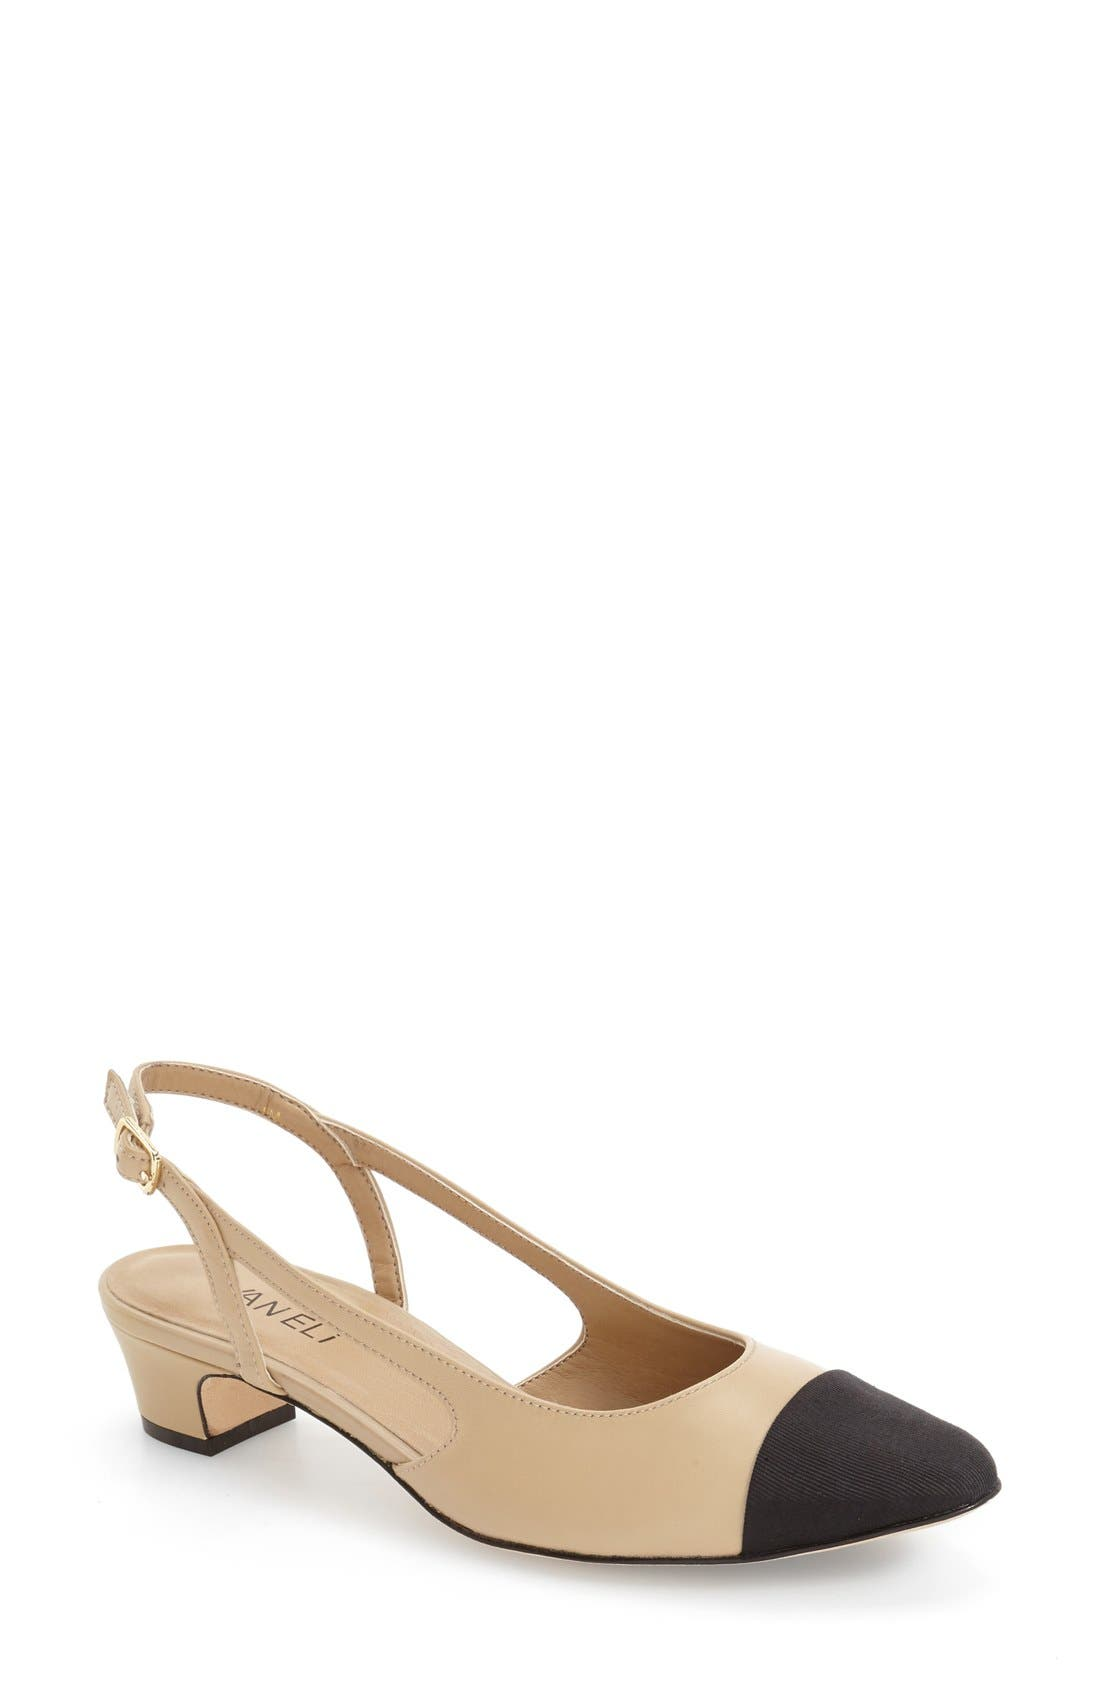 Alternate Image 1 Selected - VANELi 'Aliz' Slingback Pump (Women)